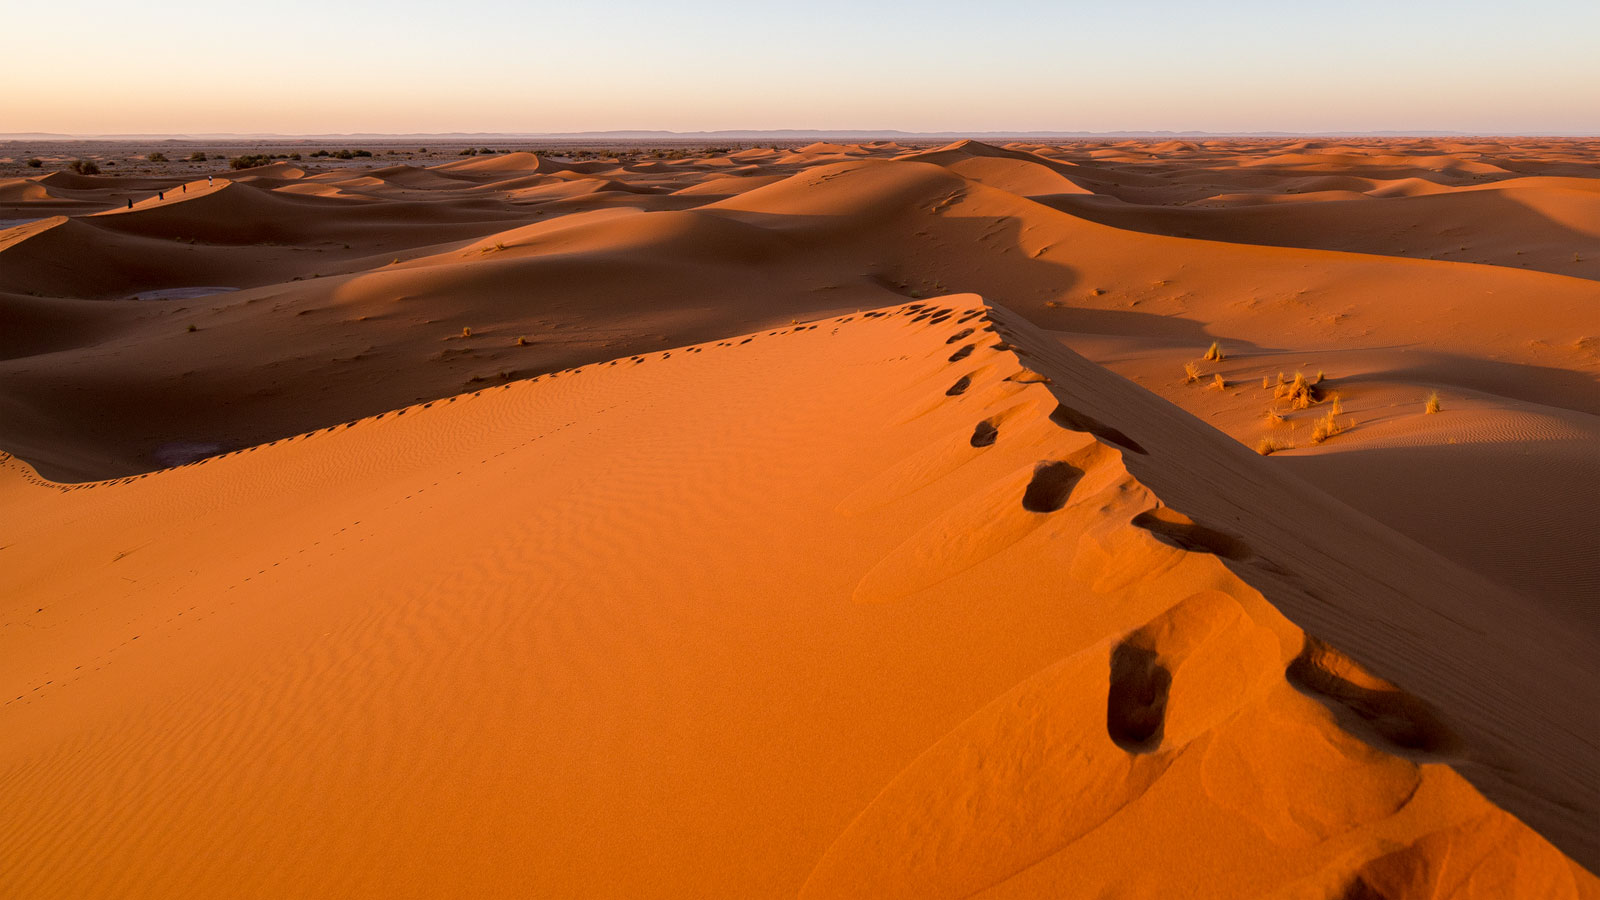 Morgenspaziergang in der Sahara